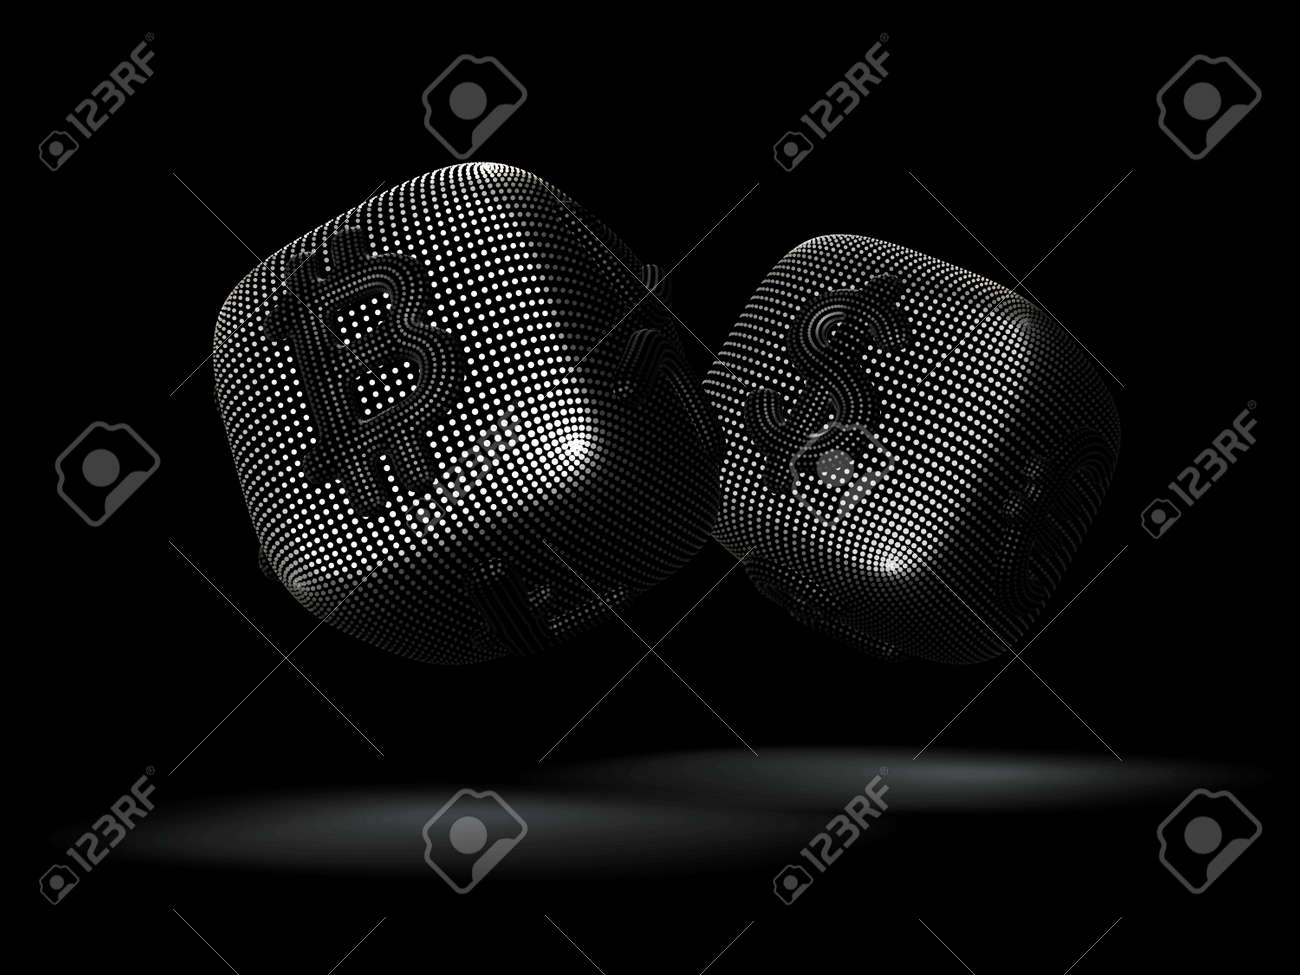 Digital 3D silver dices with cryptocurrency and currency symbols Bitcoin and Dollar. Concept of fortune in crypto investing and stock exchange trading. Black background. Vector illustration. - 163804584